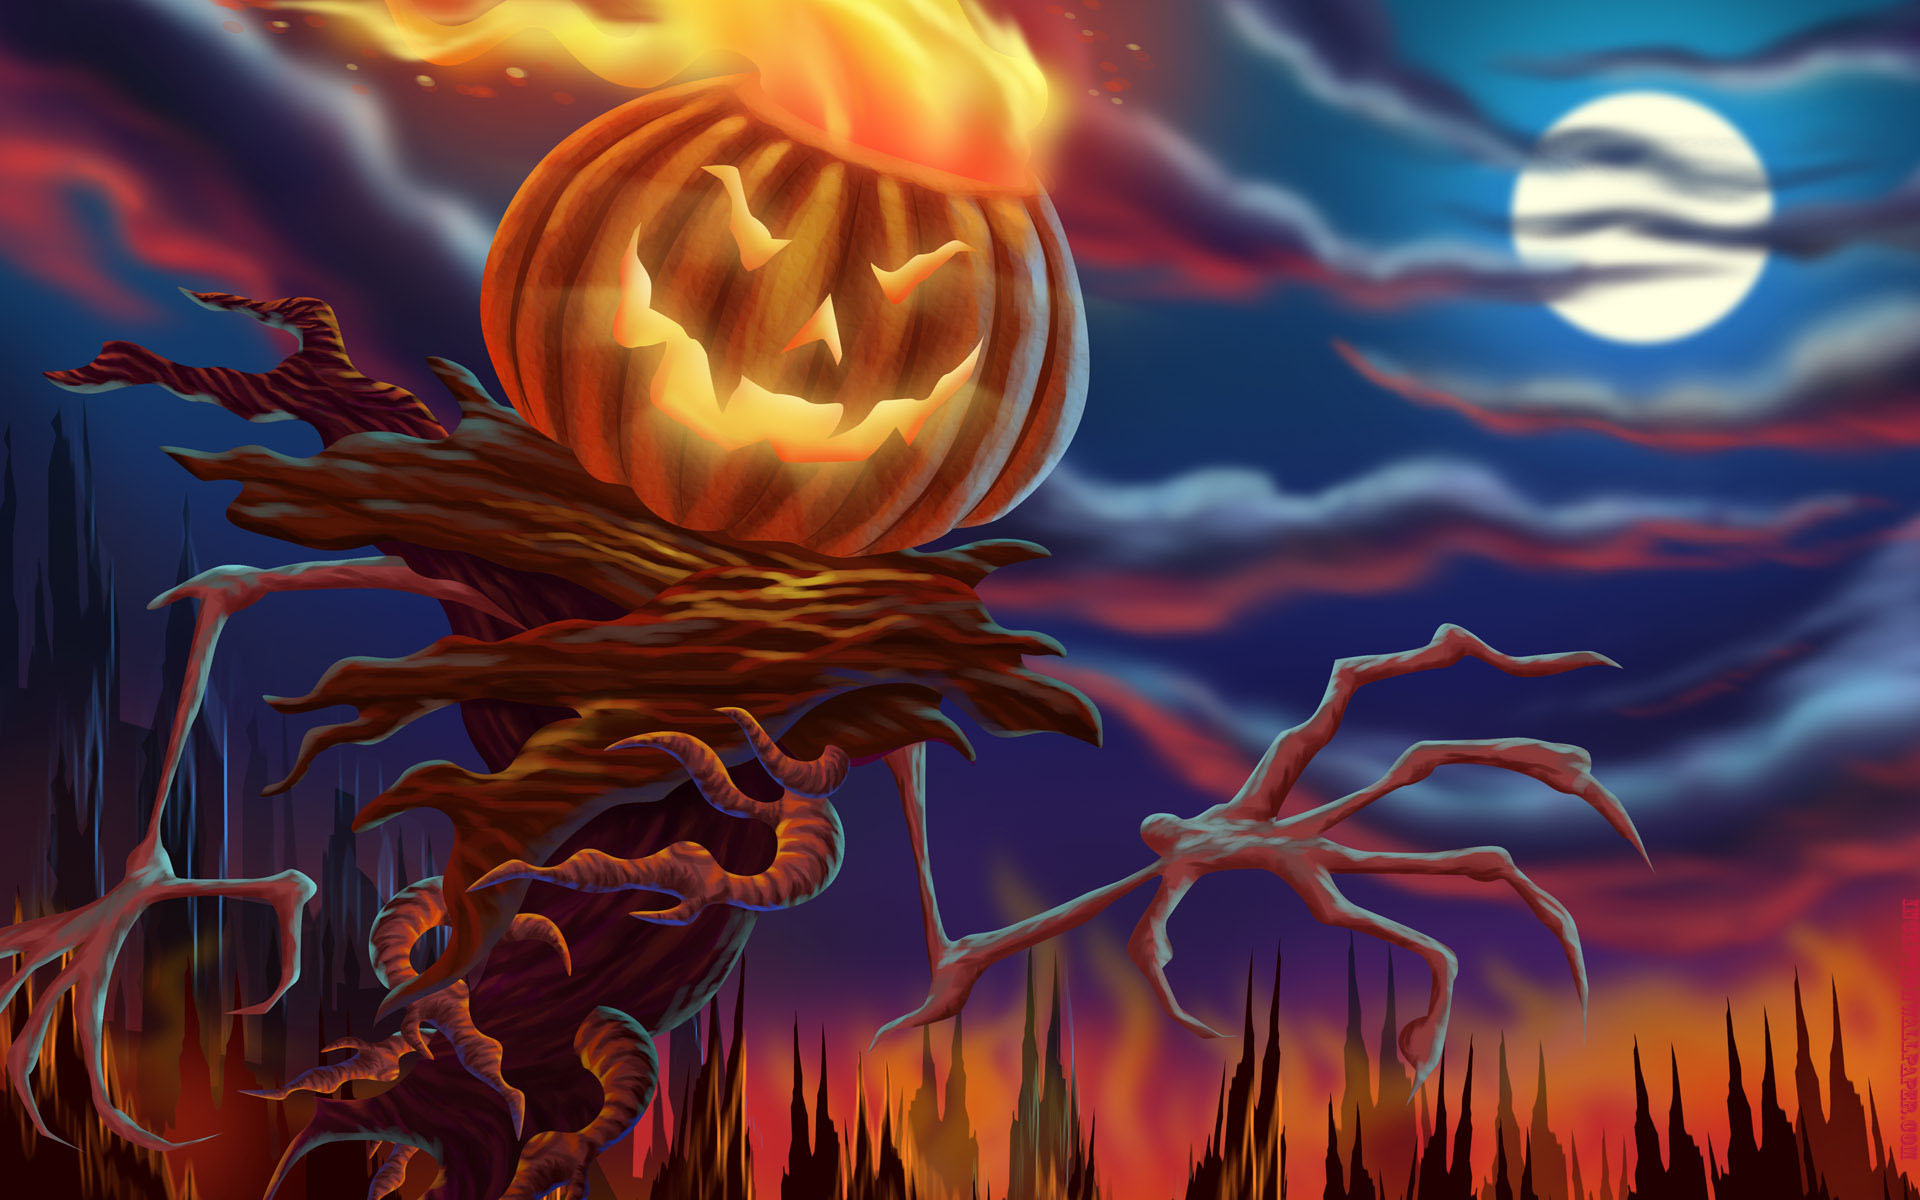 Pictures images halloween wallpapers HD.